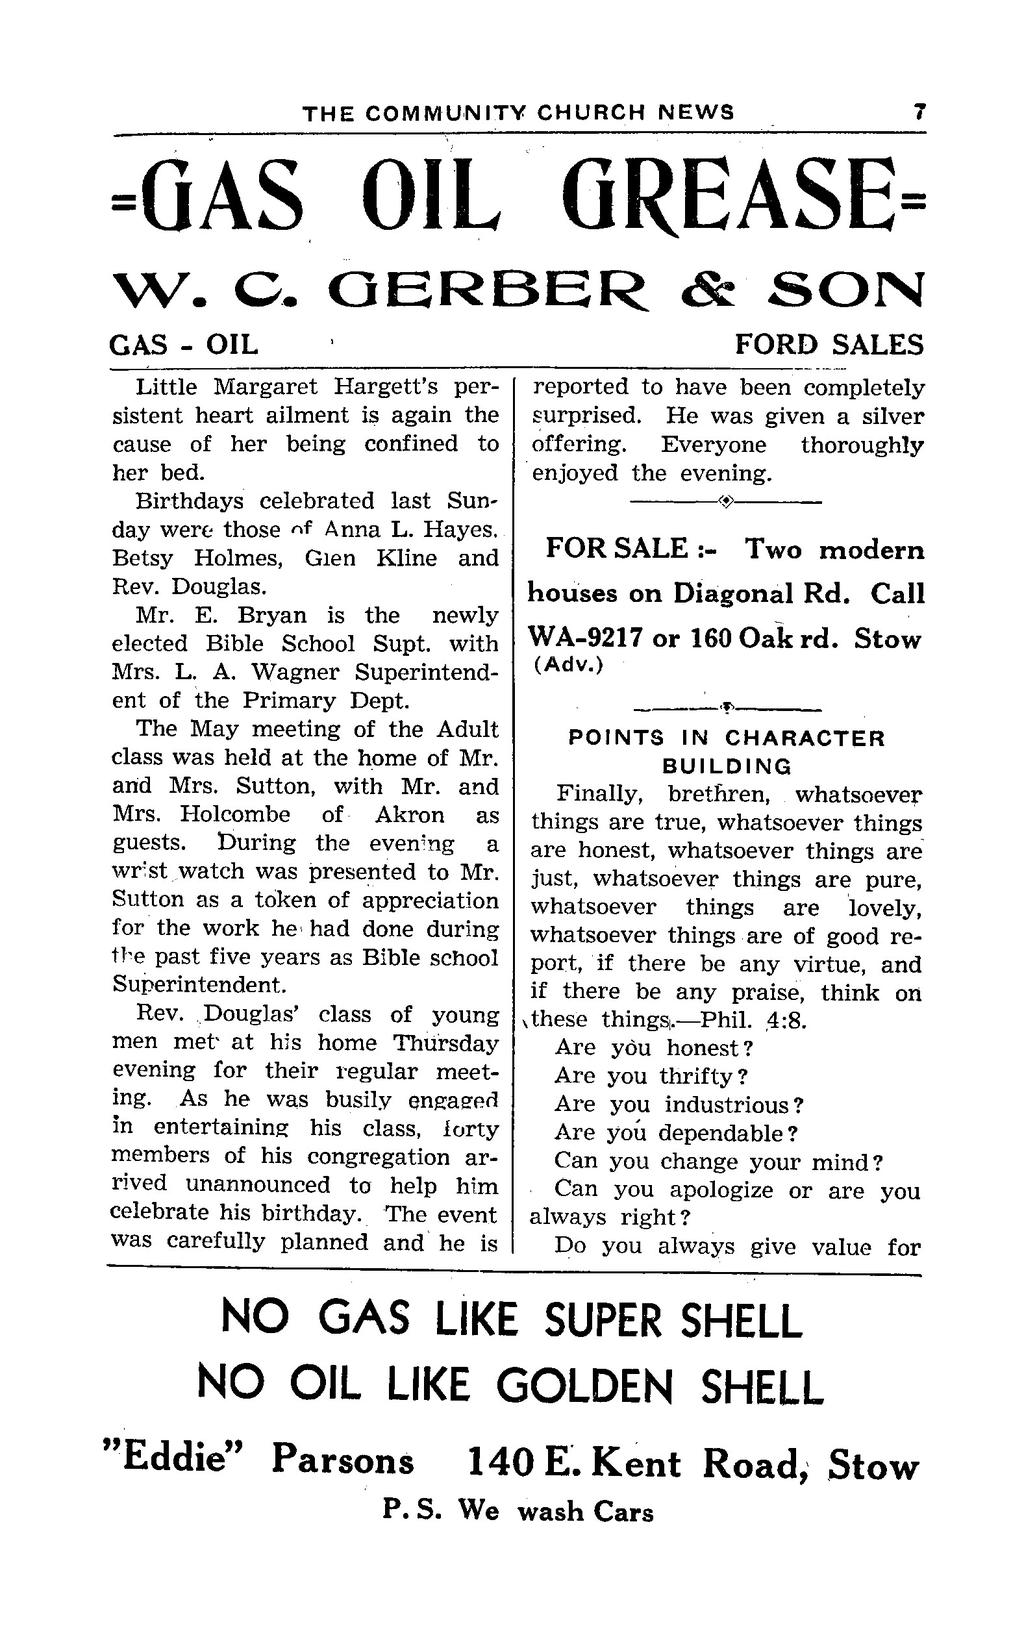 THE COMMUNITY CHURCH NEWS =GAS OIL GREASE= W. C. GERBER & SOIN GAS - OIL Little Margaret Hargett's persistent heart ailment is again the cause of her being confined to her bed.